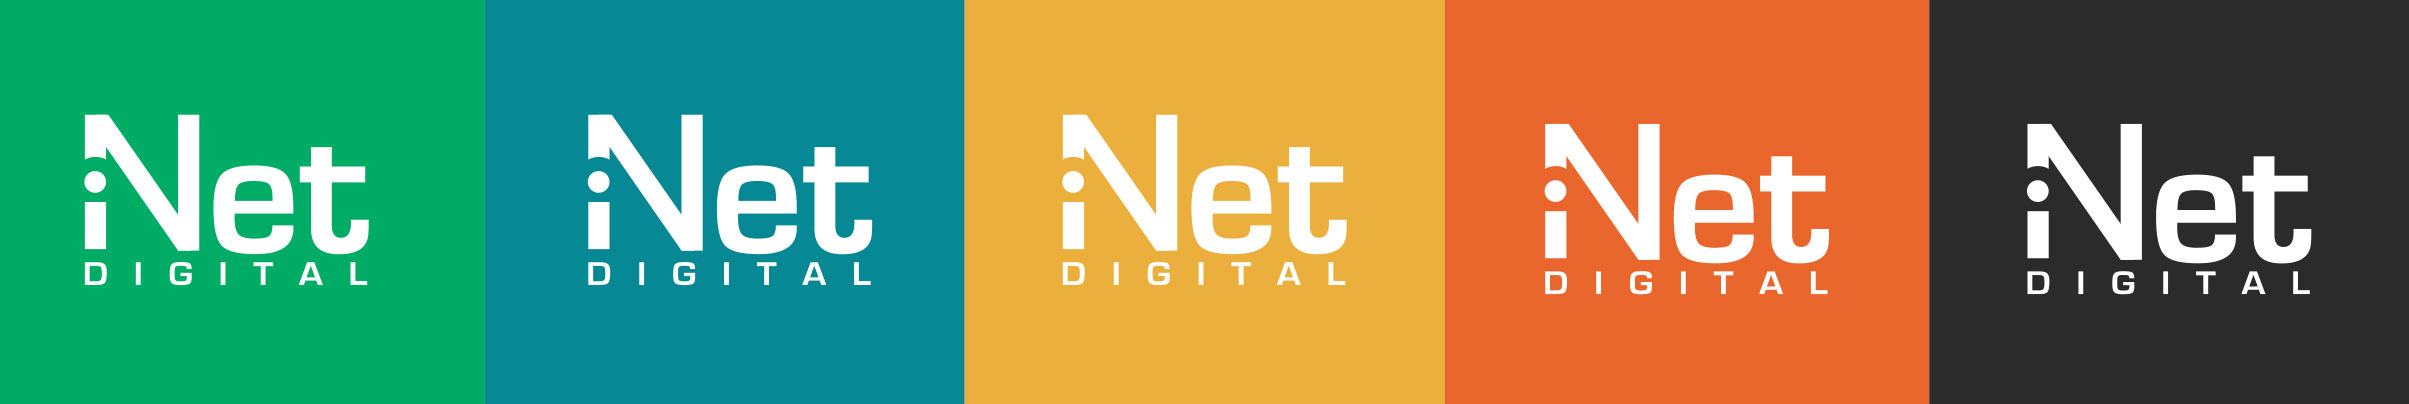 iNet Digital Brand Development